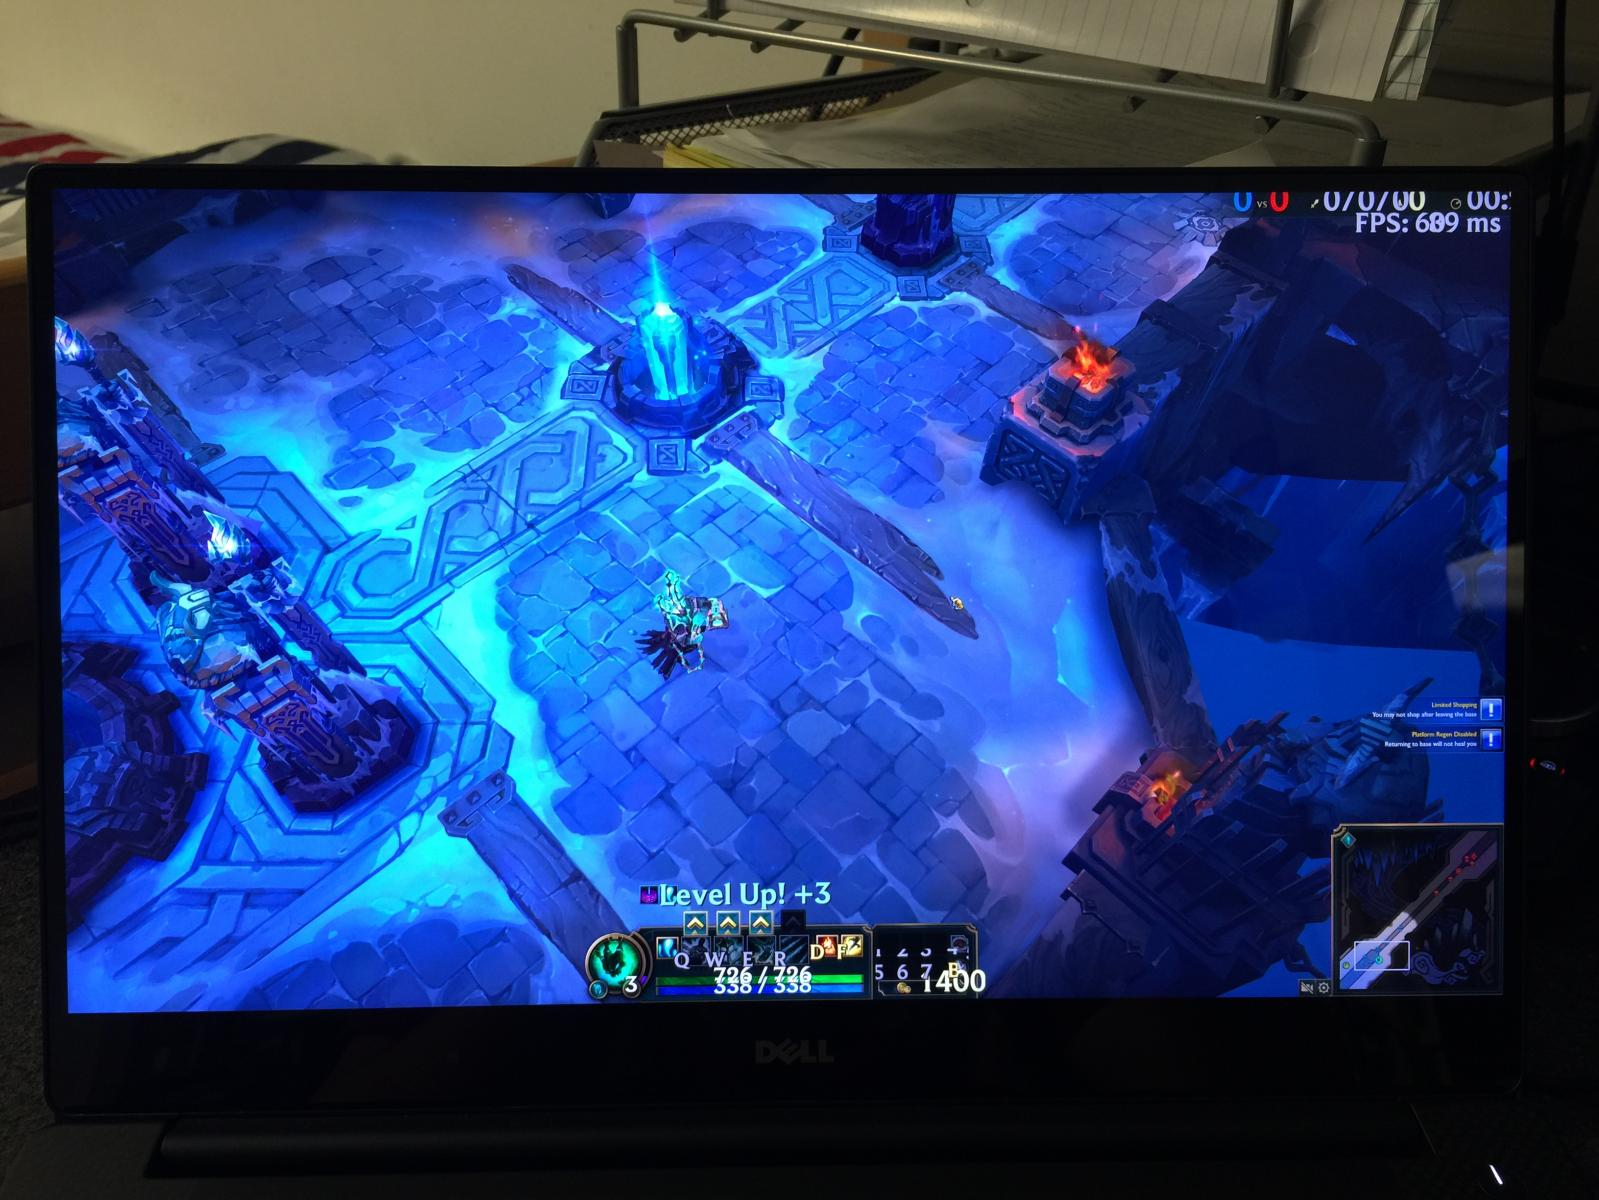 Dell XPS 15 4k League of Legends issues - Troubleshooting - Linus